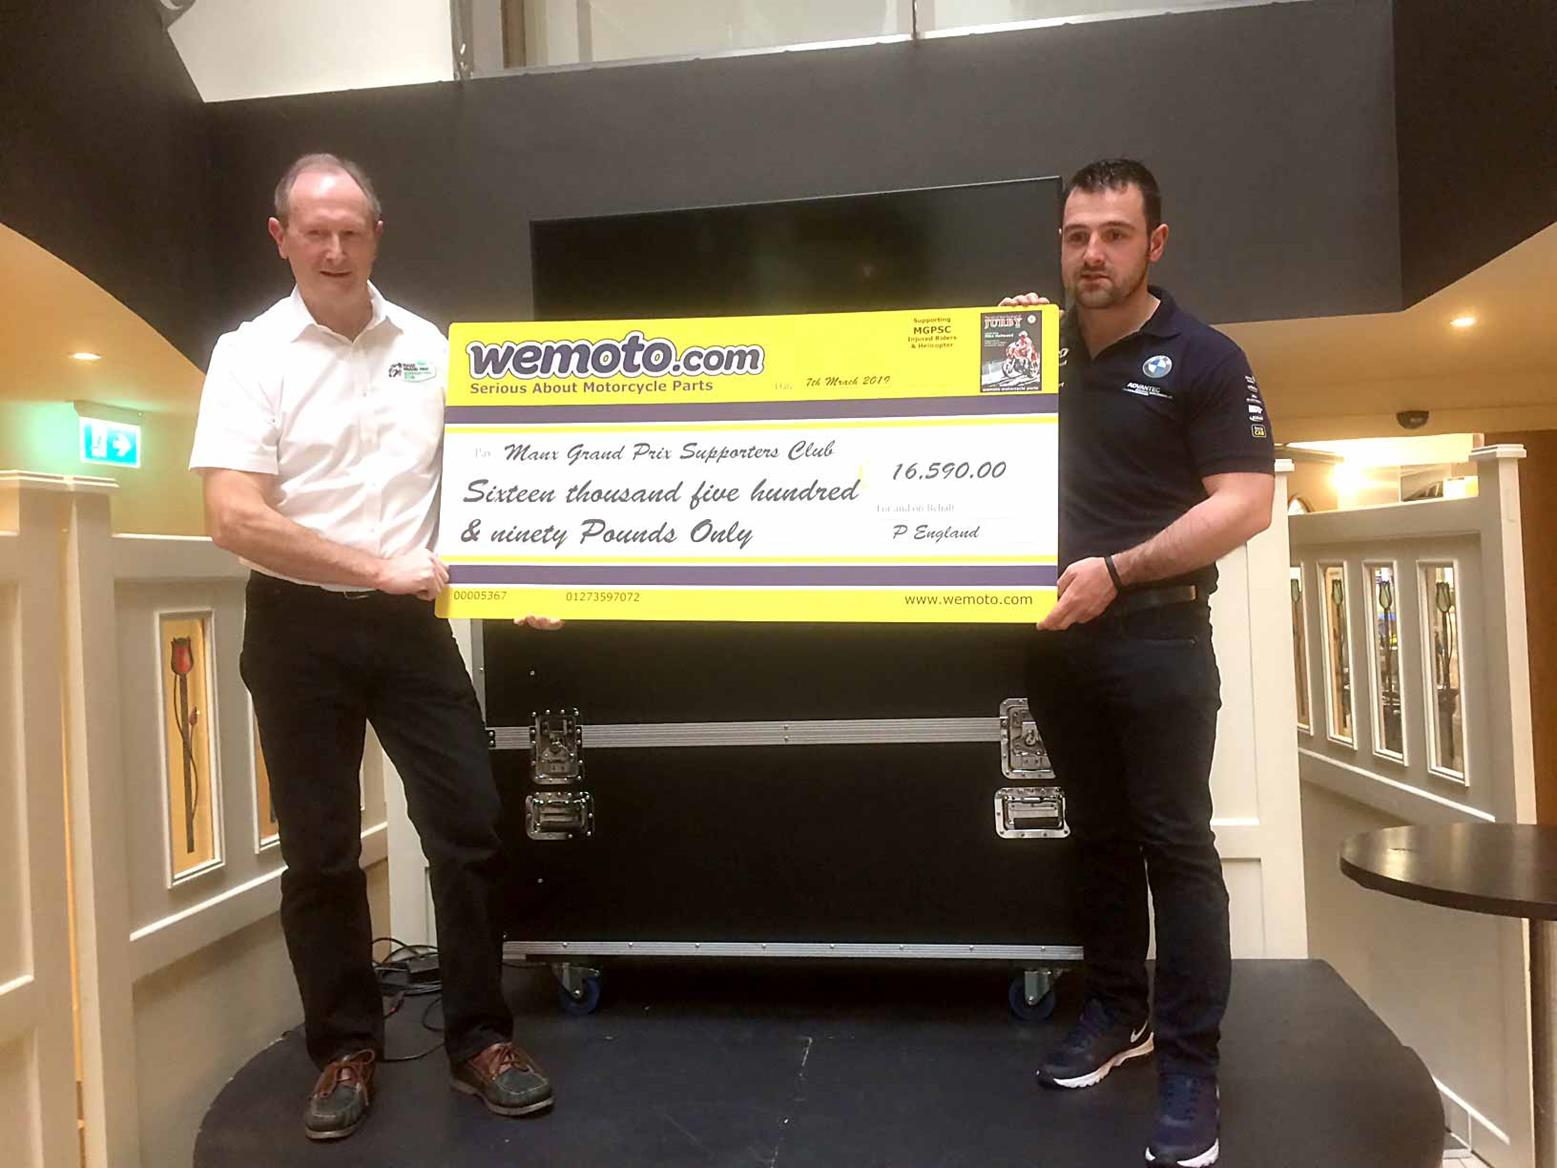 Michael Dunlop helps present a cheque